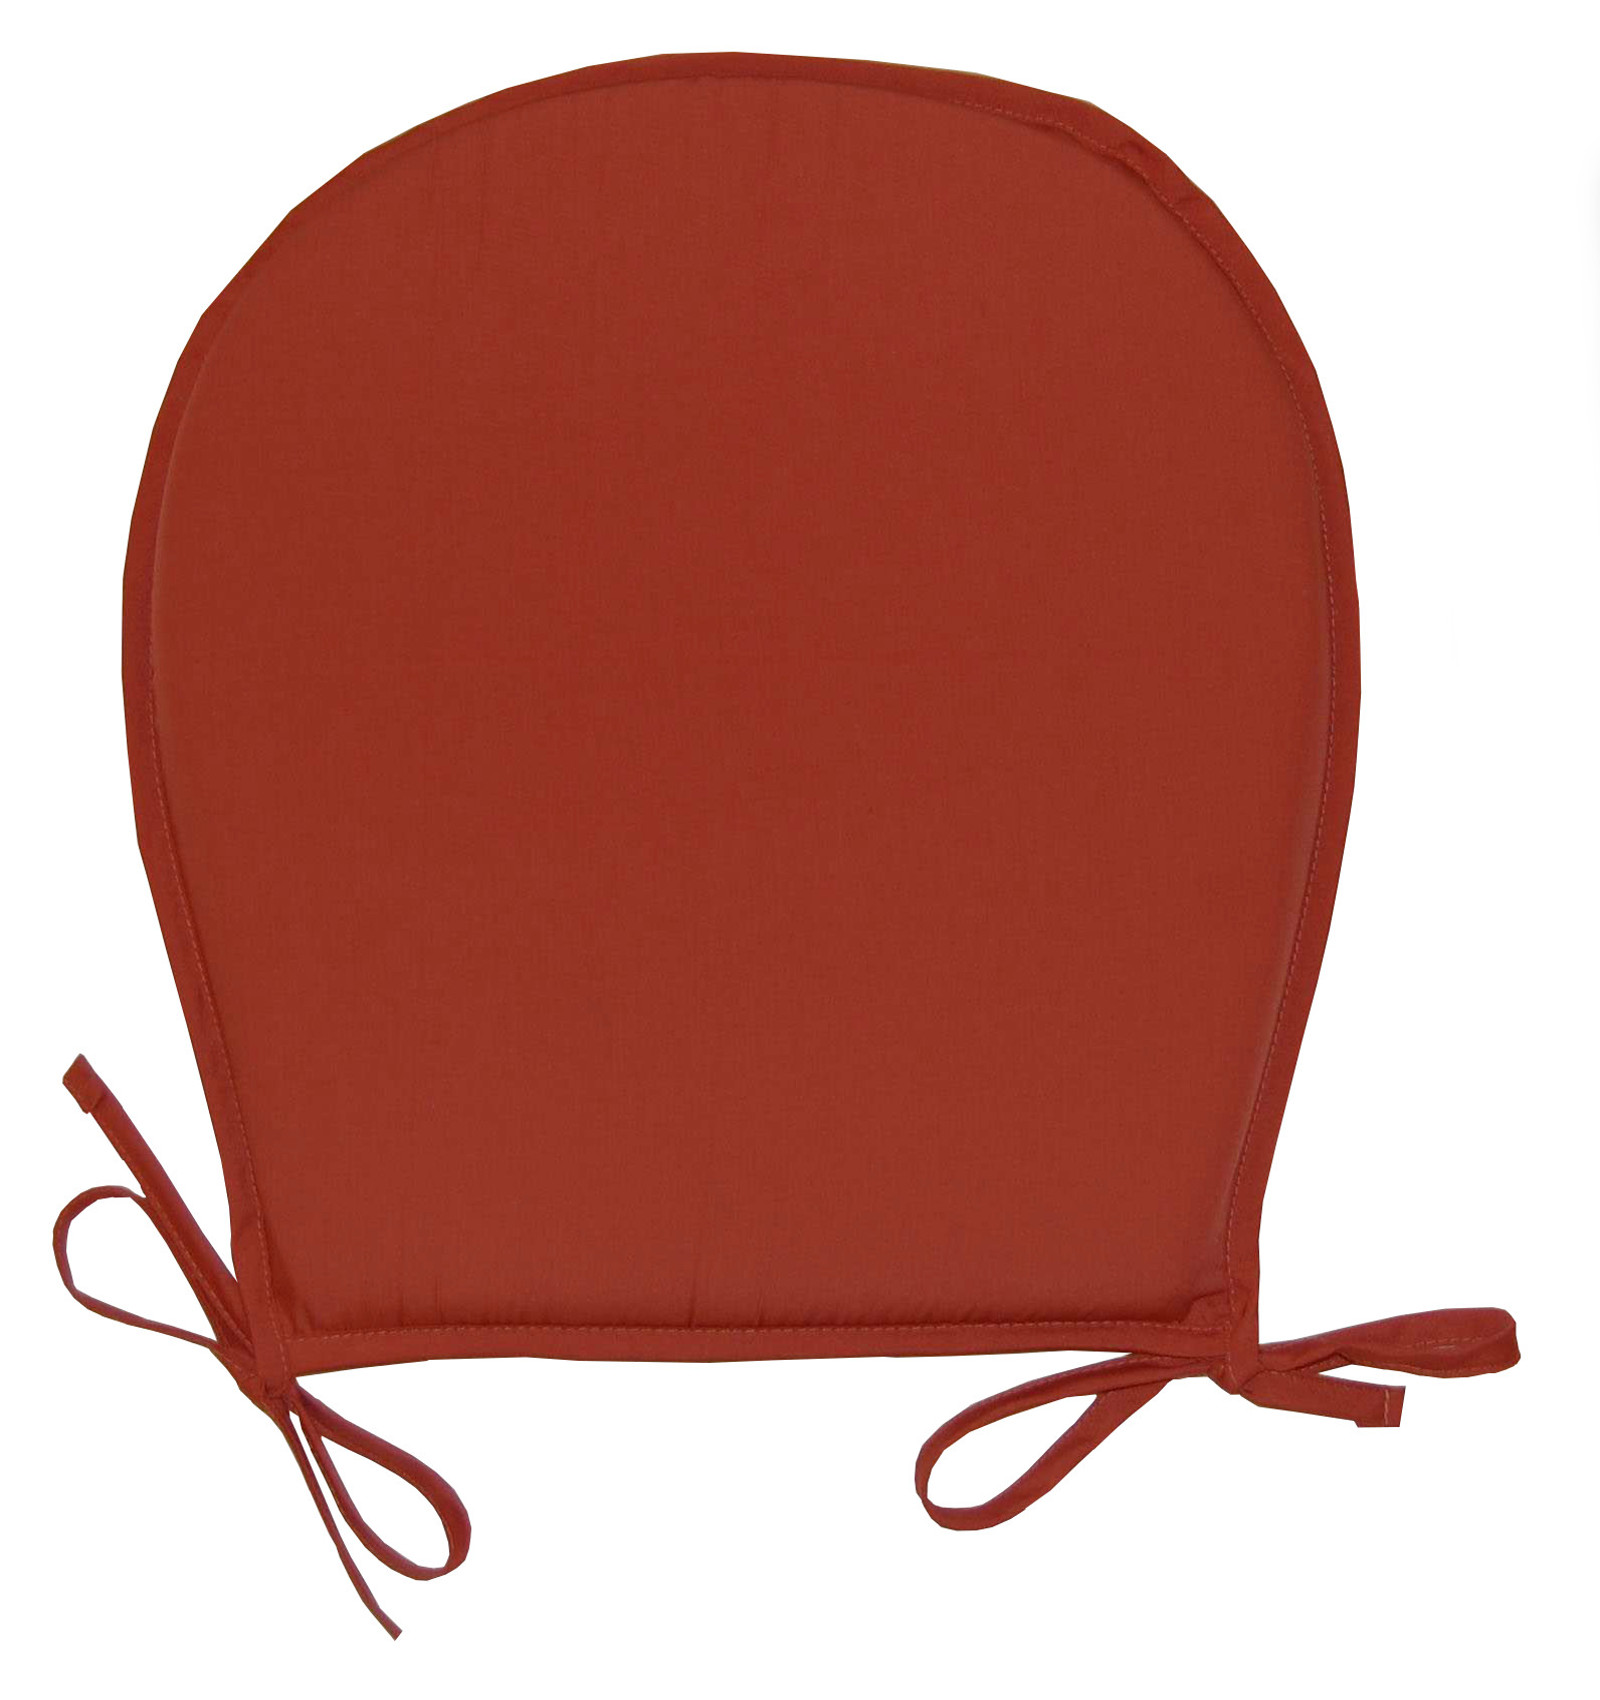 Plain Round Seat Pad Outdoor Garden Dining Kitchen Chair